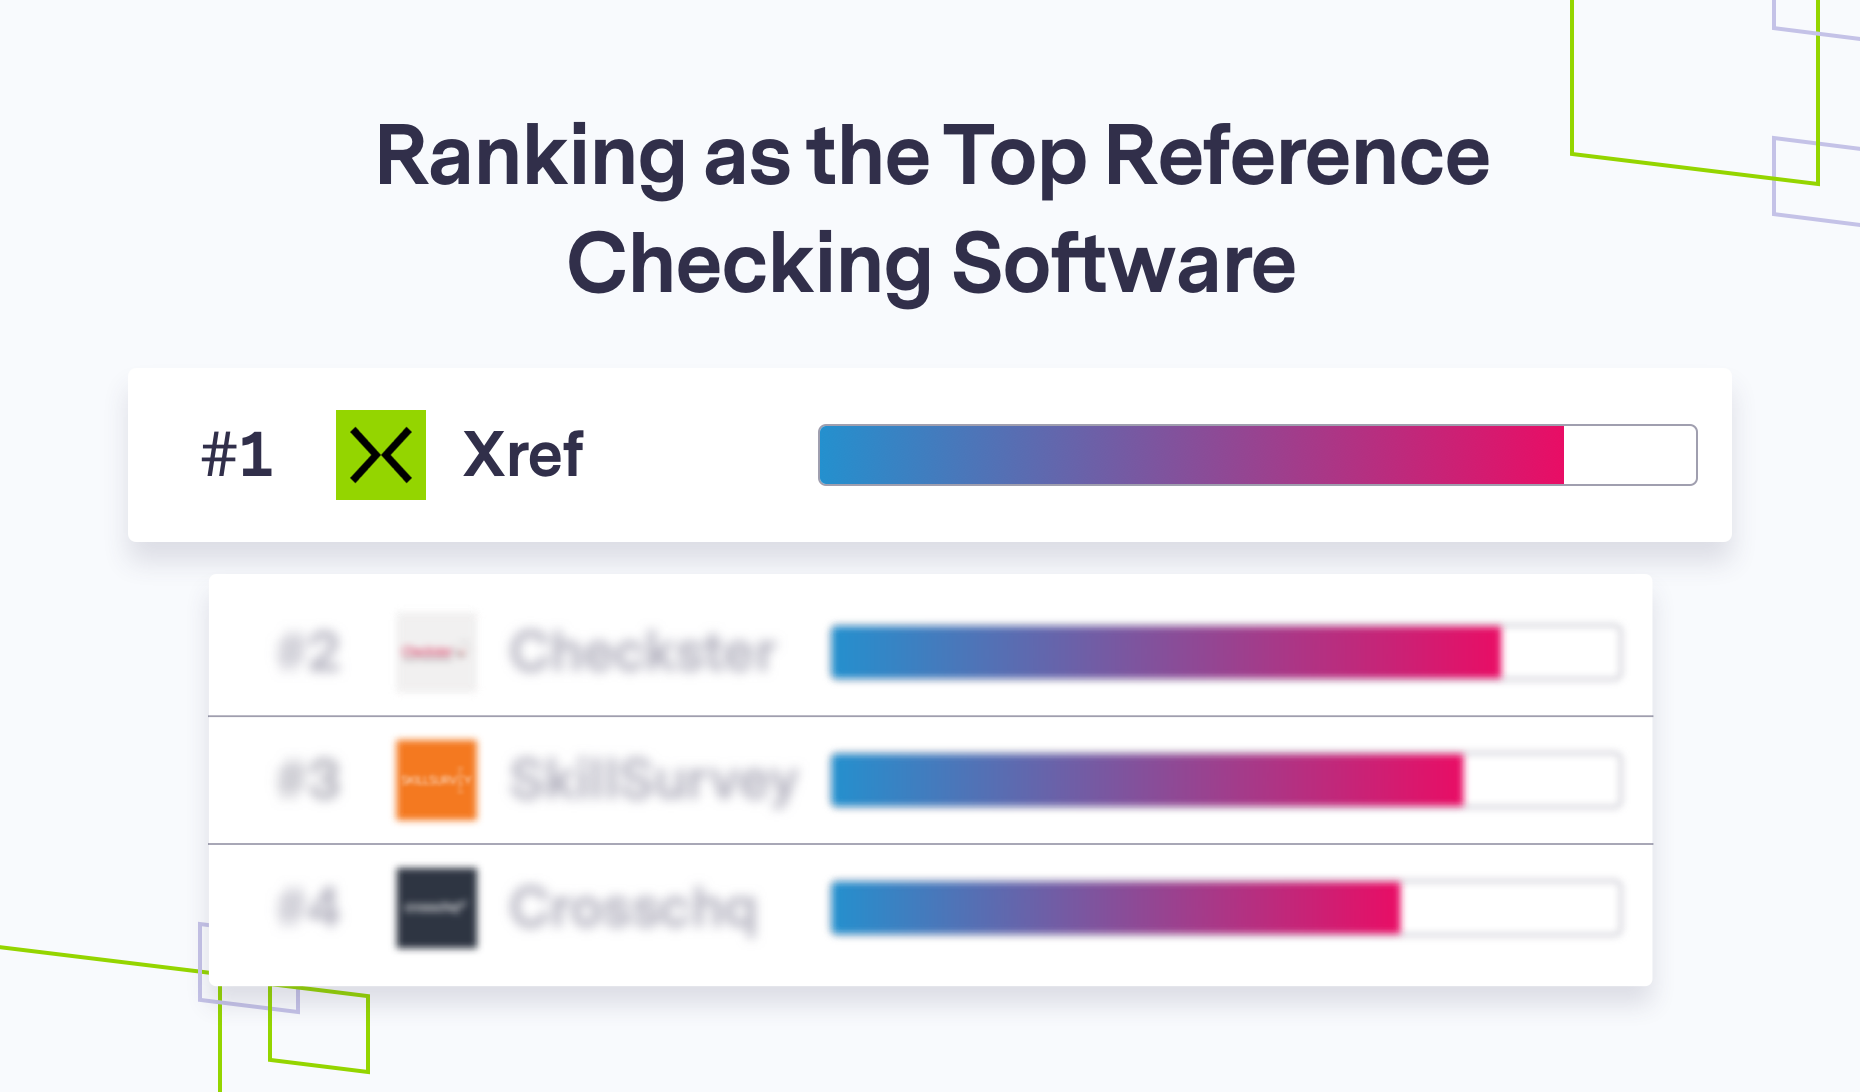 Xref Ranked number 1 graphic, brand shapes on grey